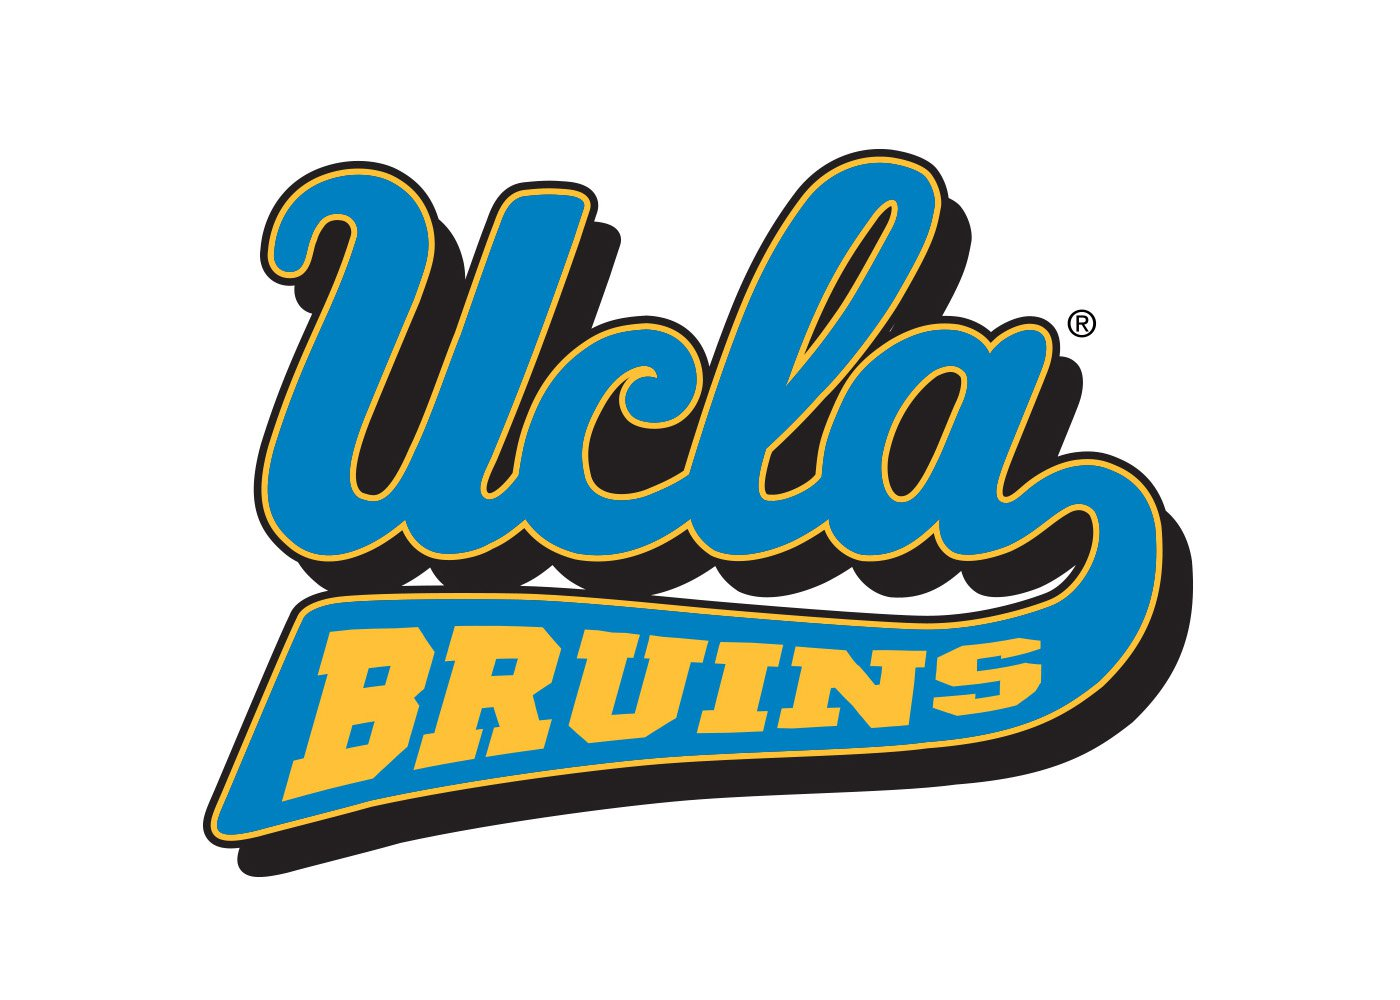 ucla logo coloring pages - photo#20